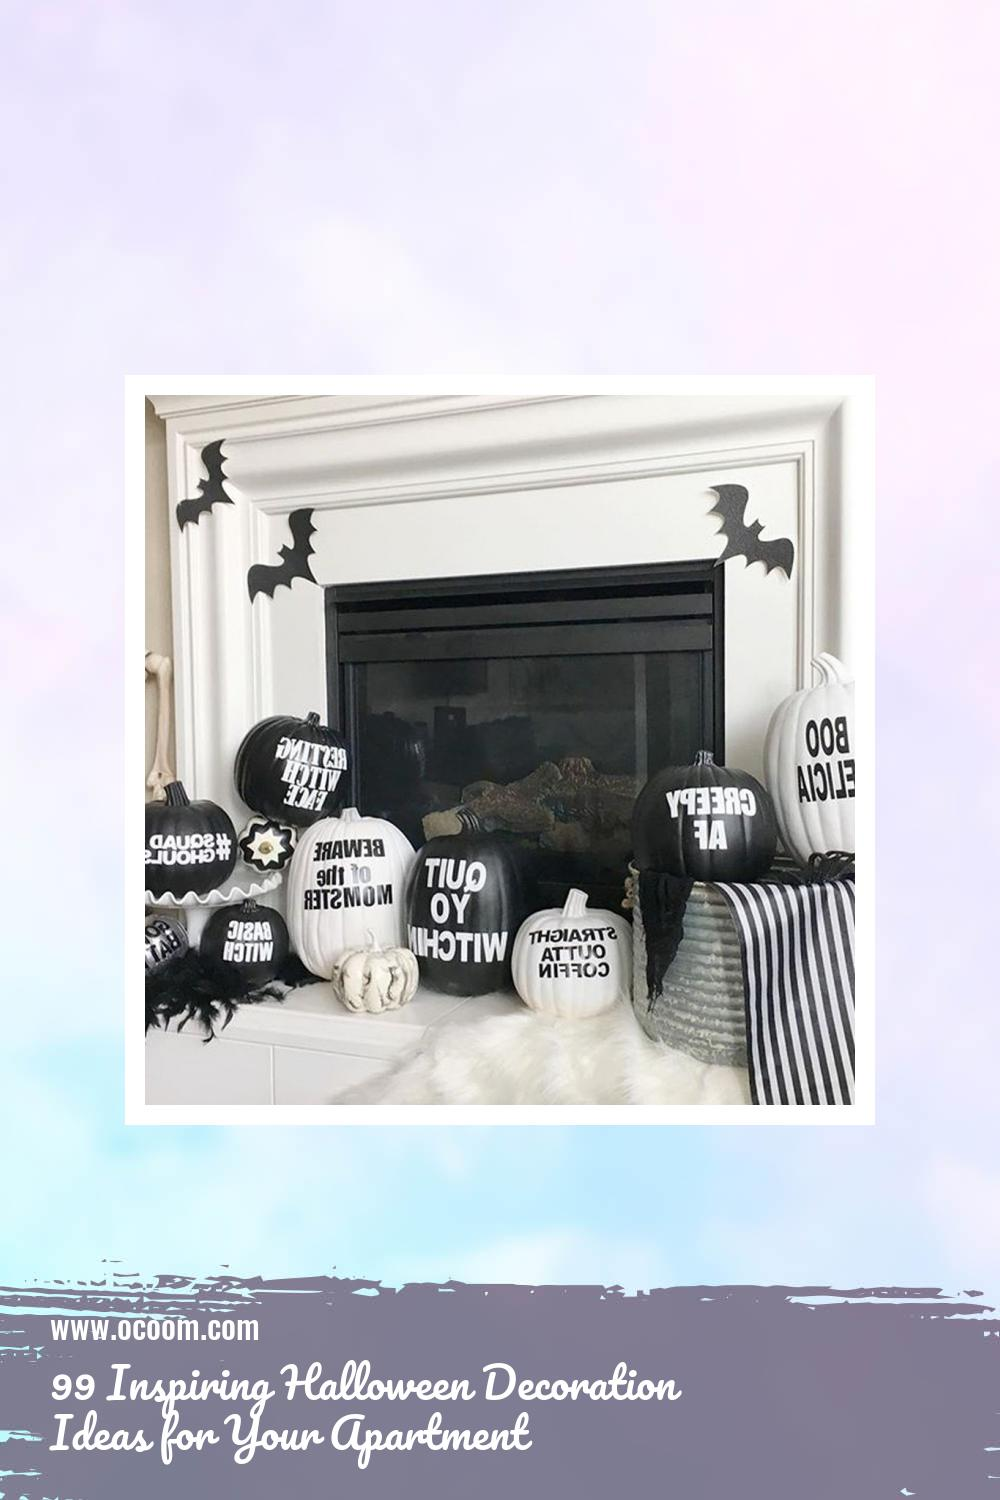 99 Inspiring Halloween Decoration Ideas for Your Apartment 70